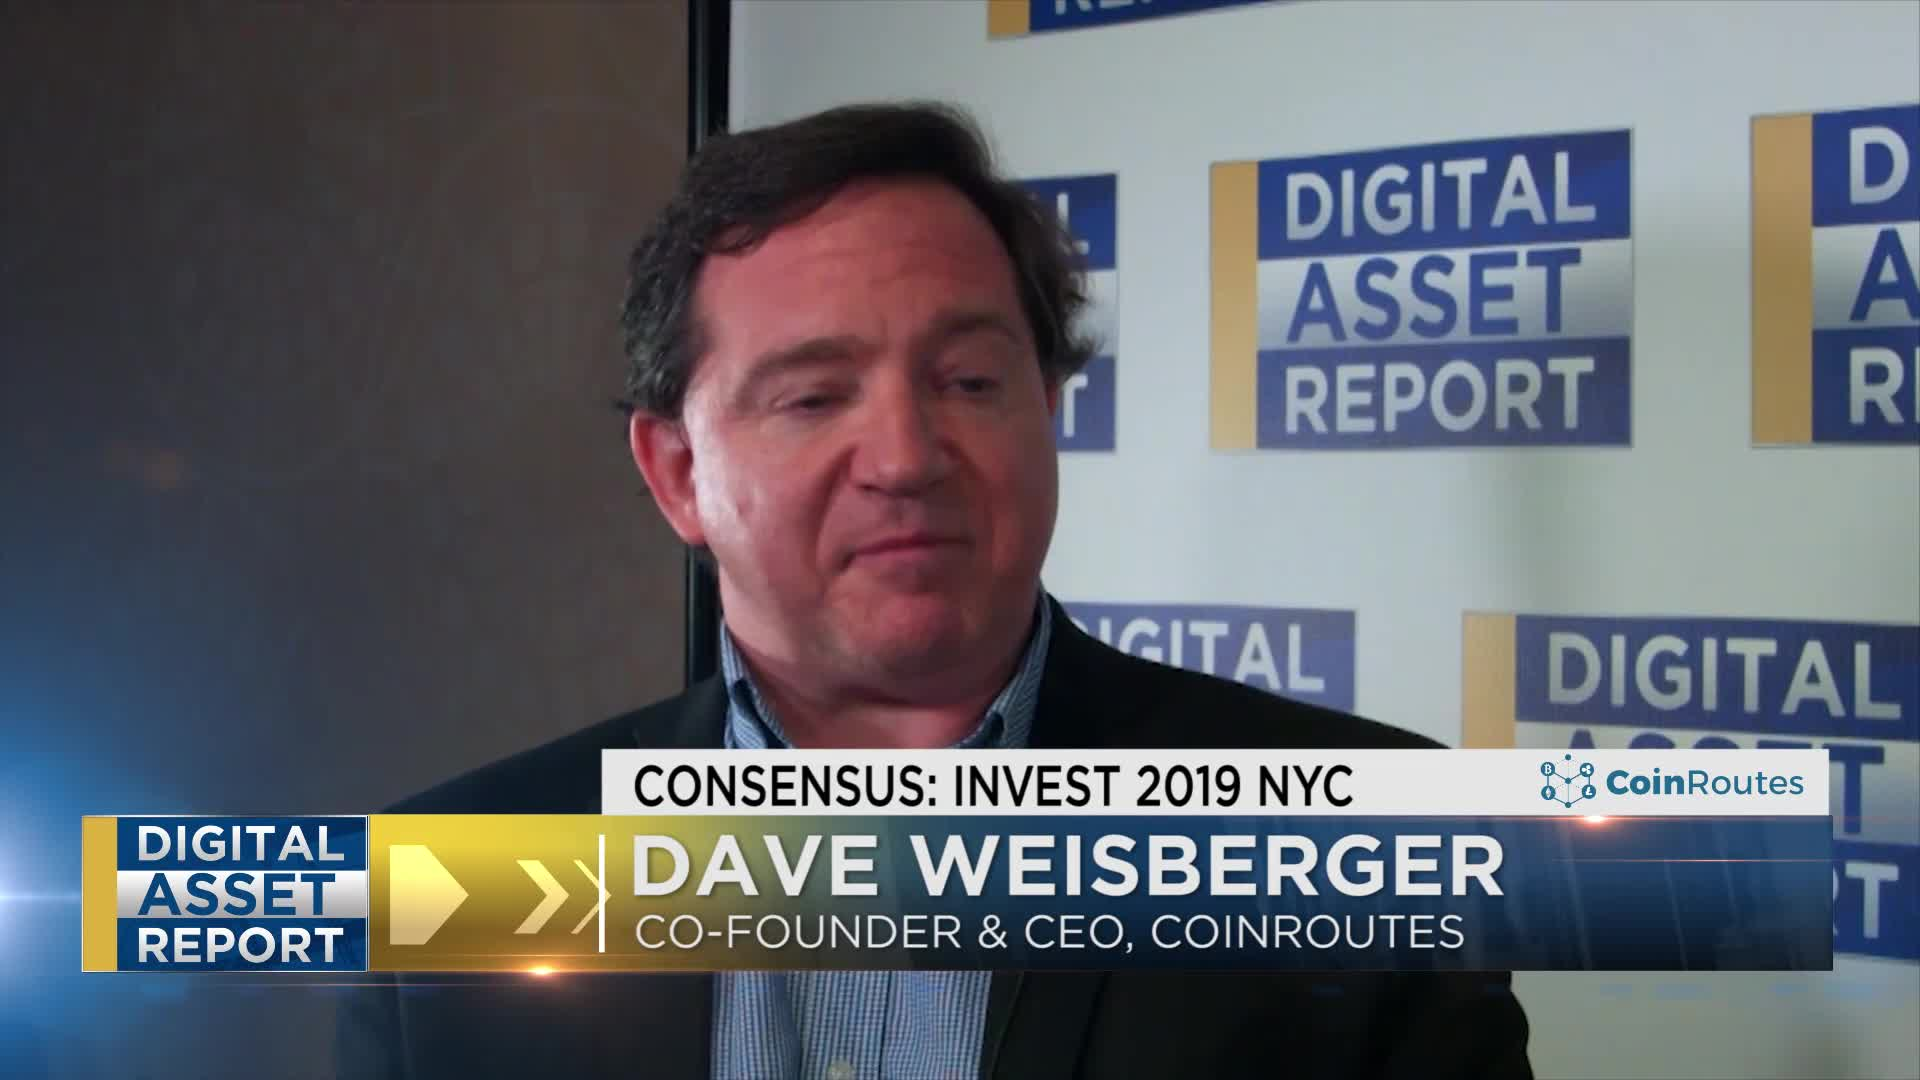 DAVE_WEISBERGER_COINROUTES_AT_CONSENSUS.mp4